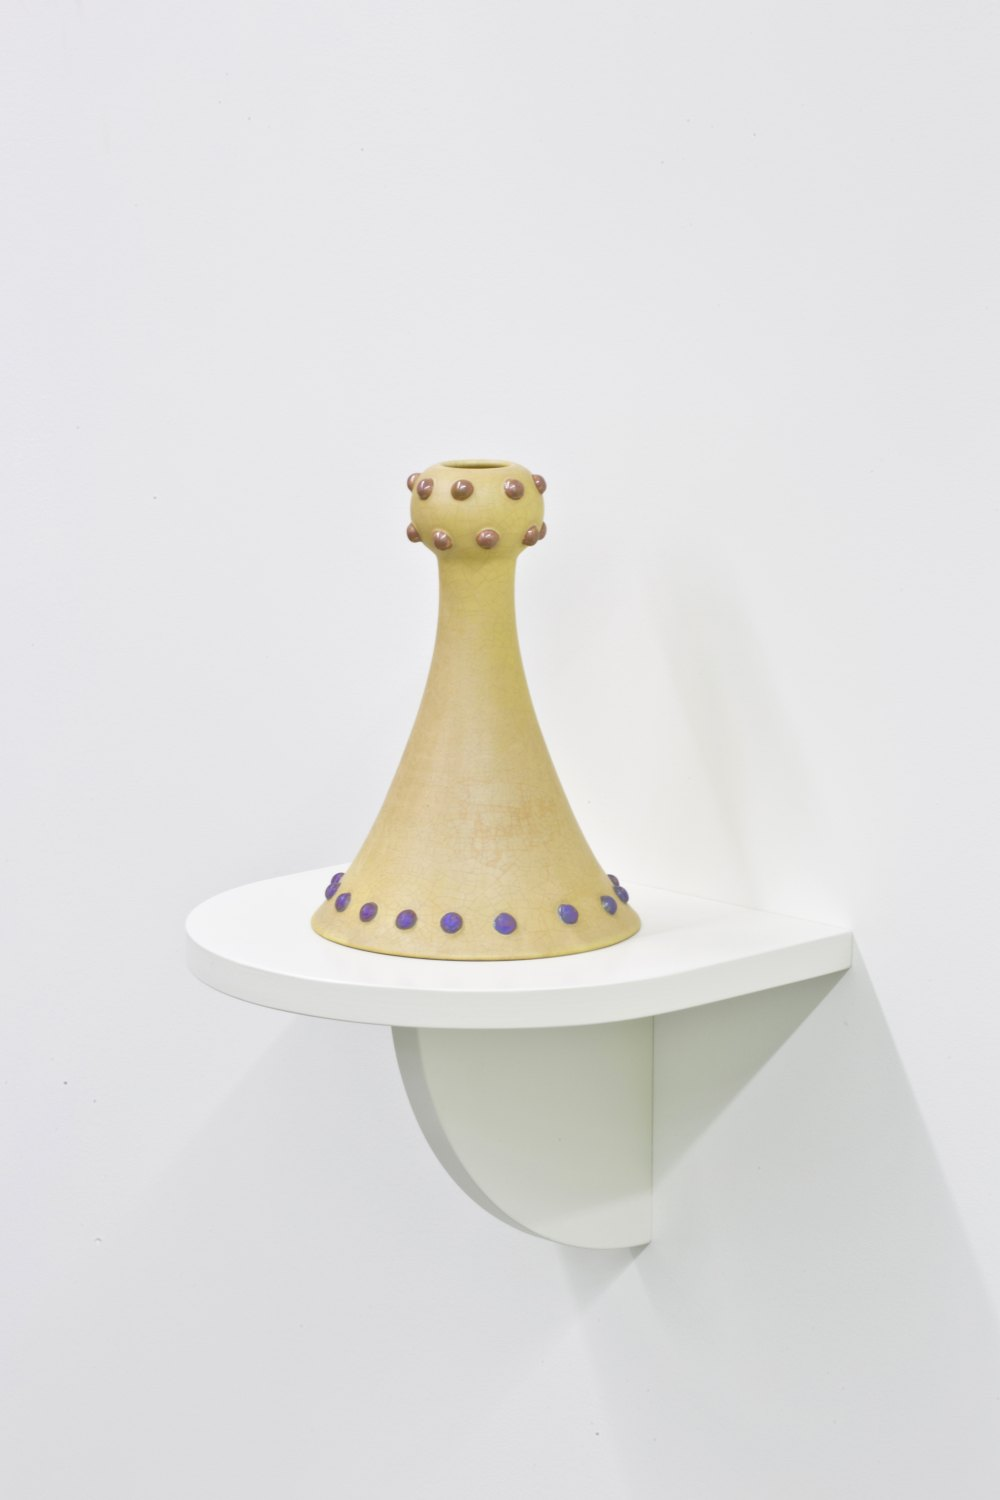 Marc Camille Chaimowicz Rose vase, 2014 Glazed ceramic, 26 cm × ∅ 18 cm